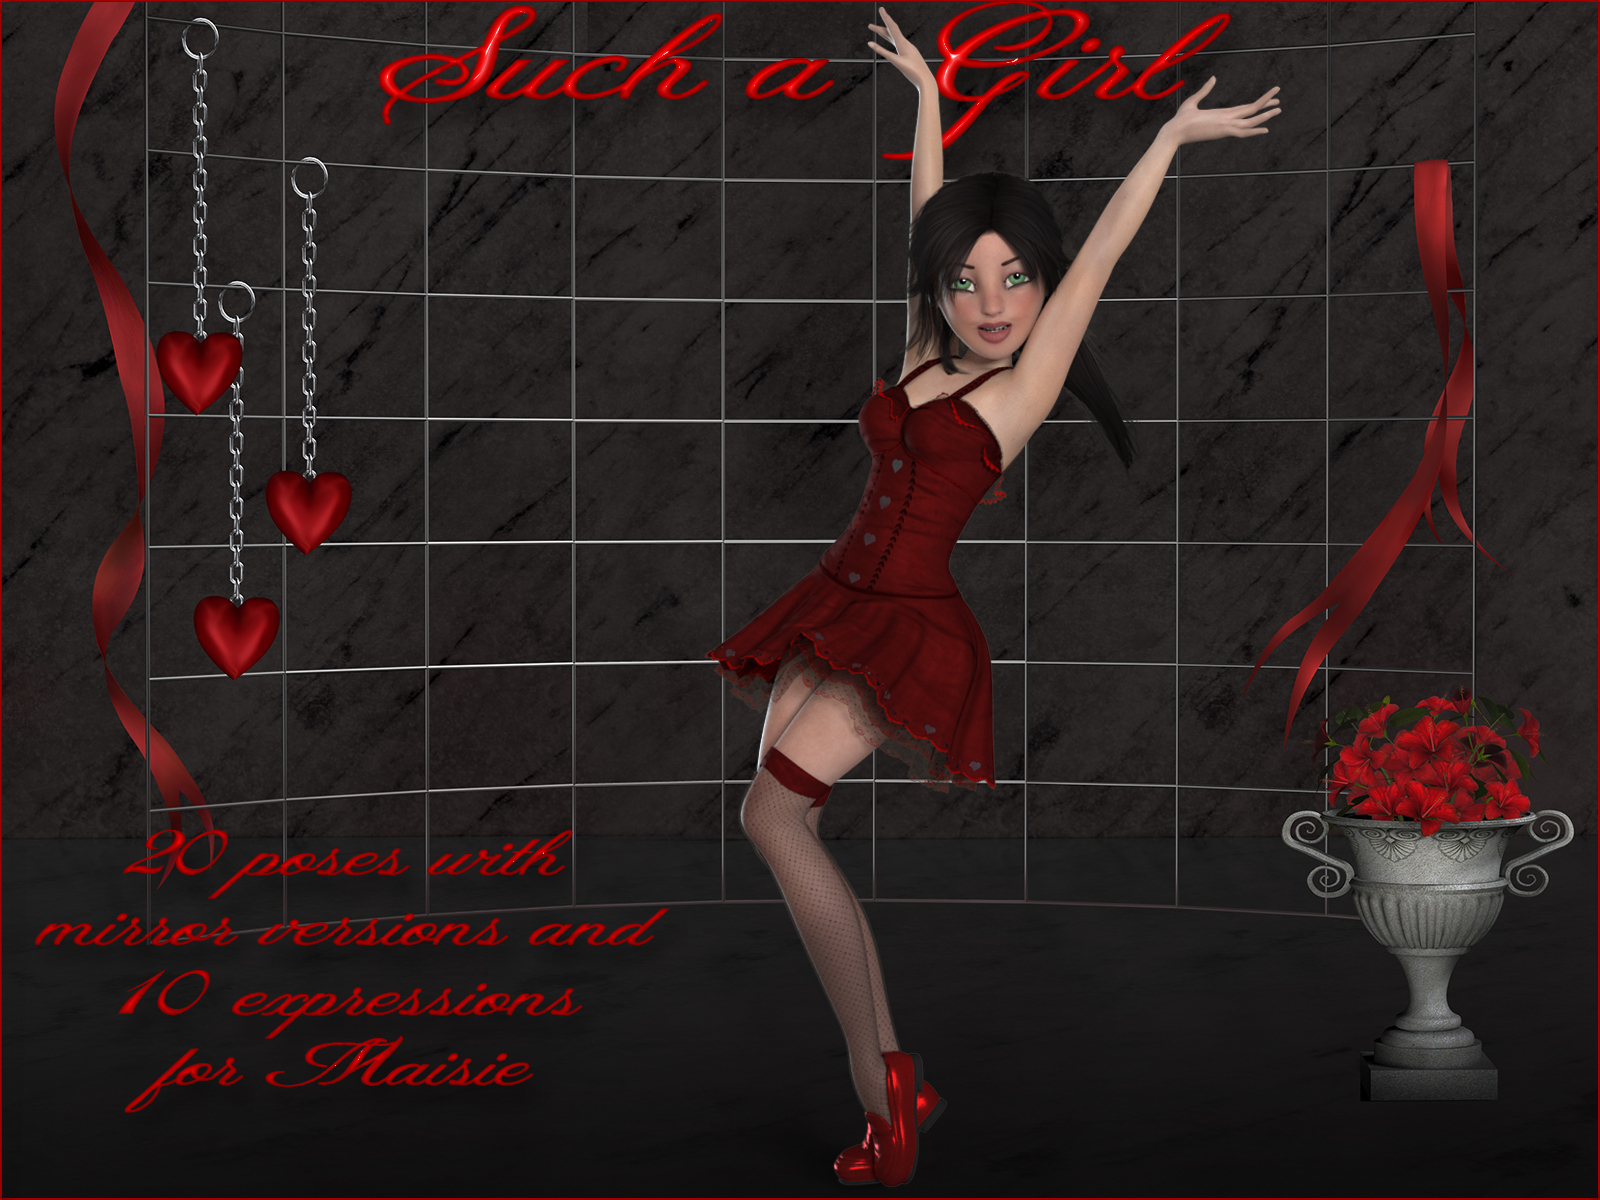 Maisie - Such a Girl by RPublishing